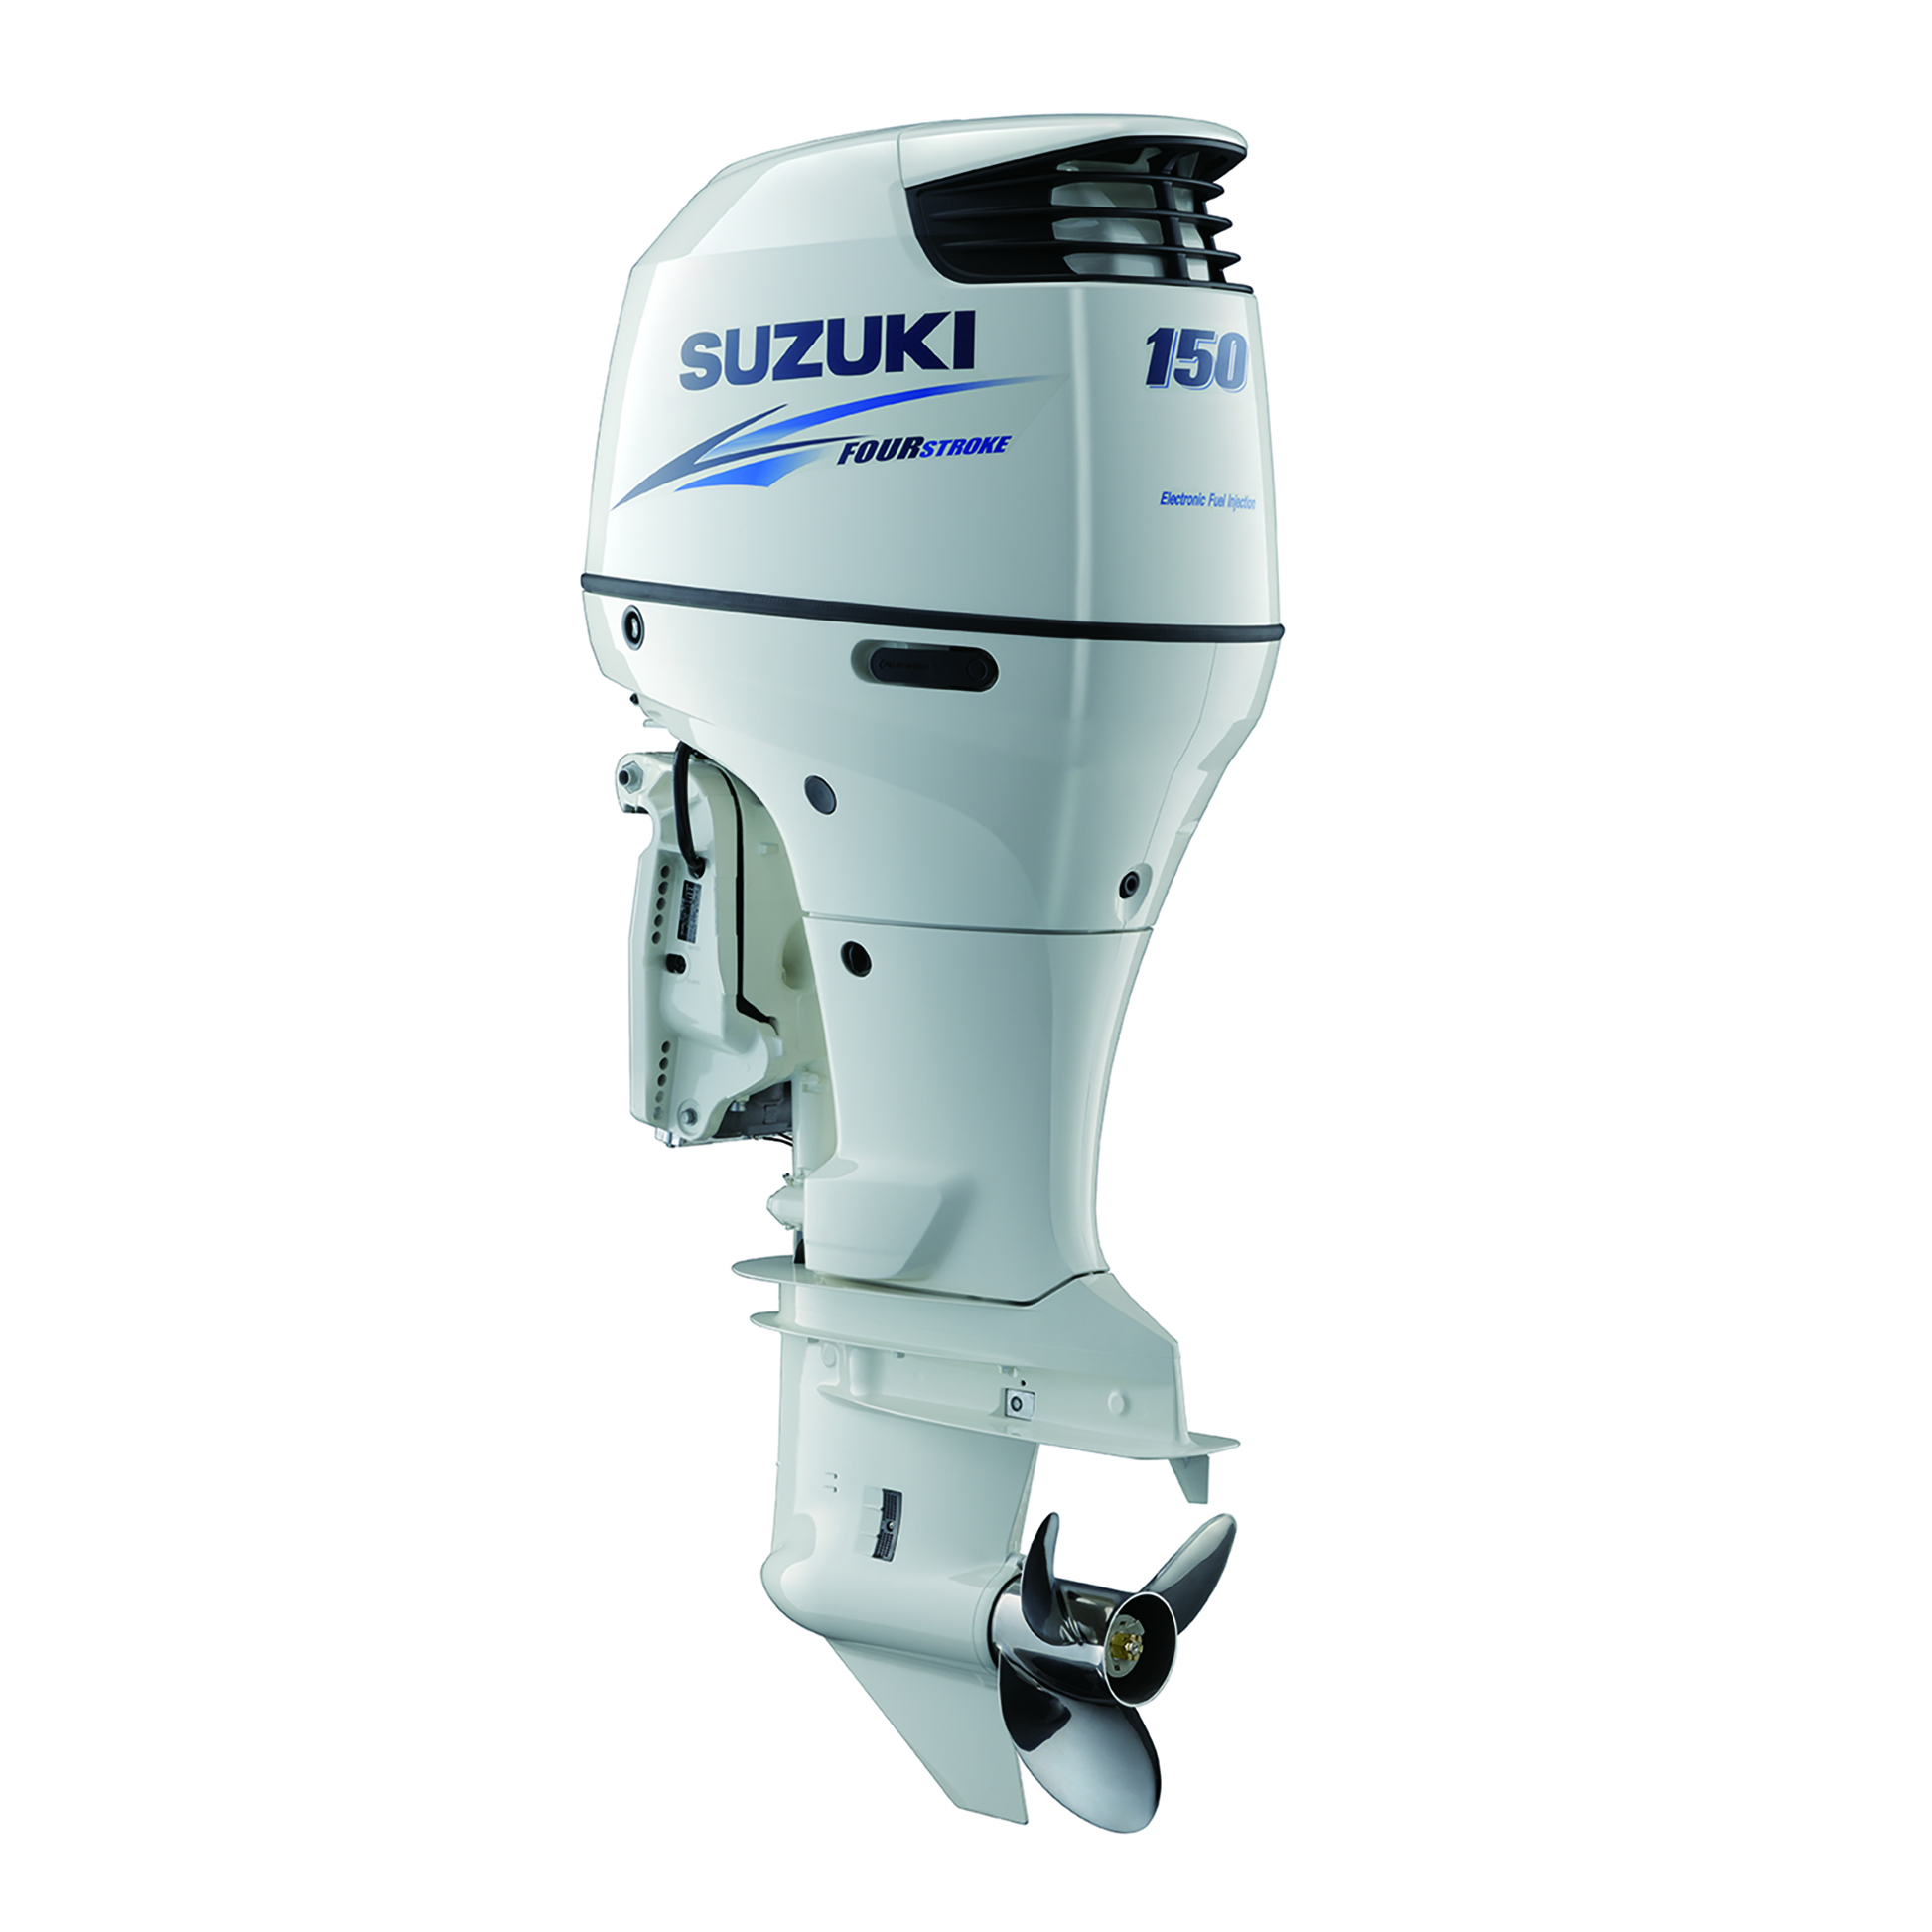 4 3 mercruiser engine maintenance 4 free engine image for Suzuki outboard motor dealers